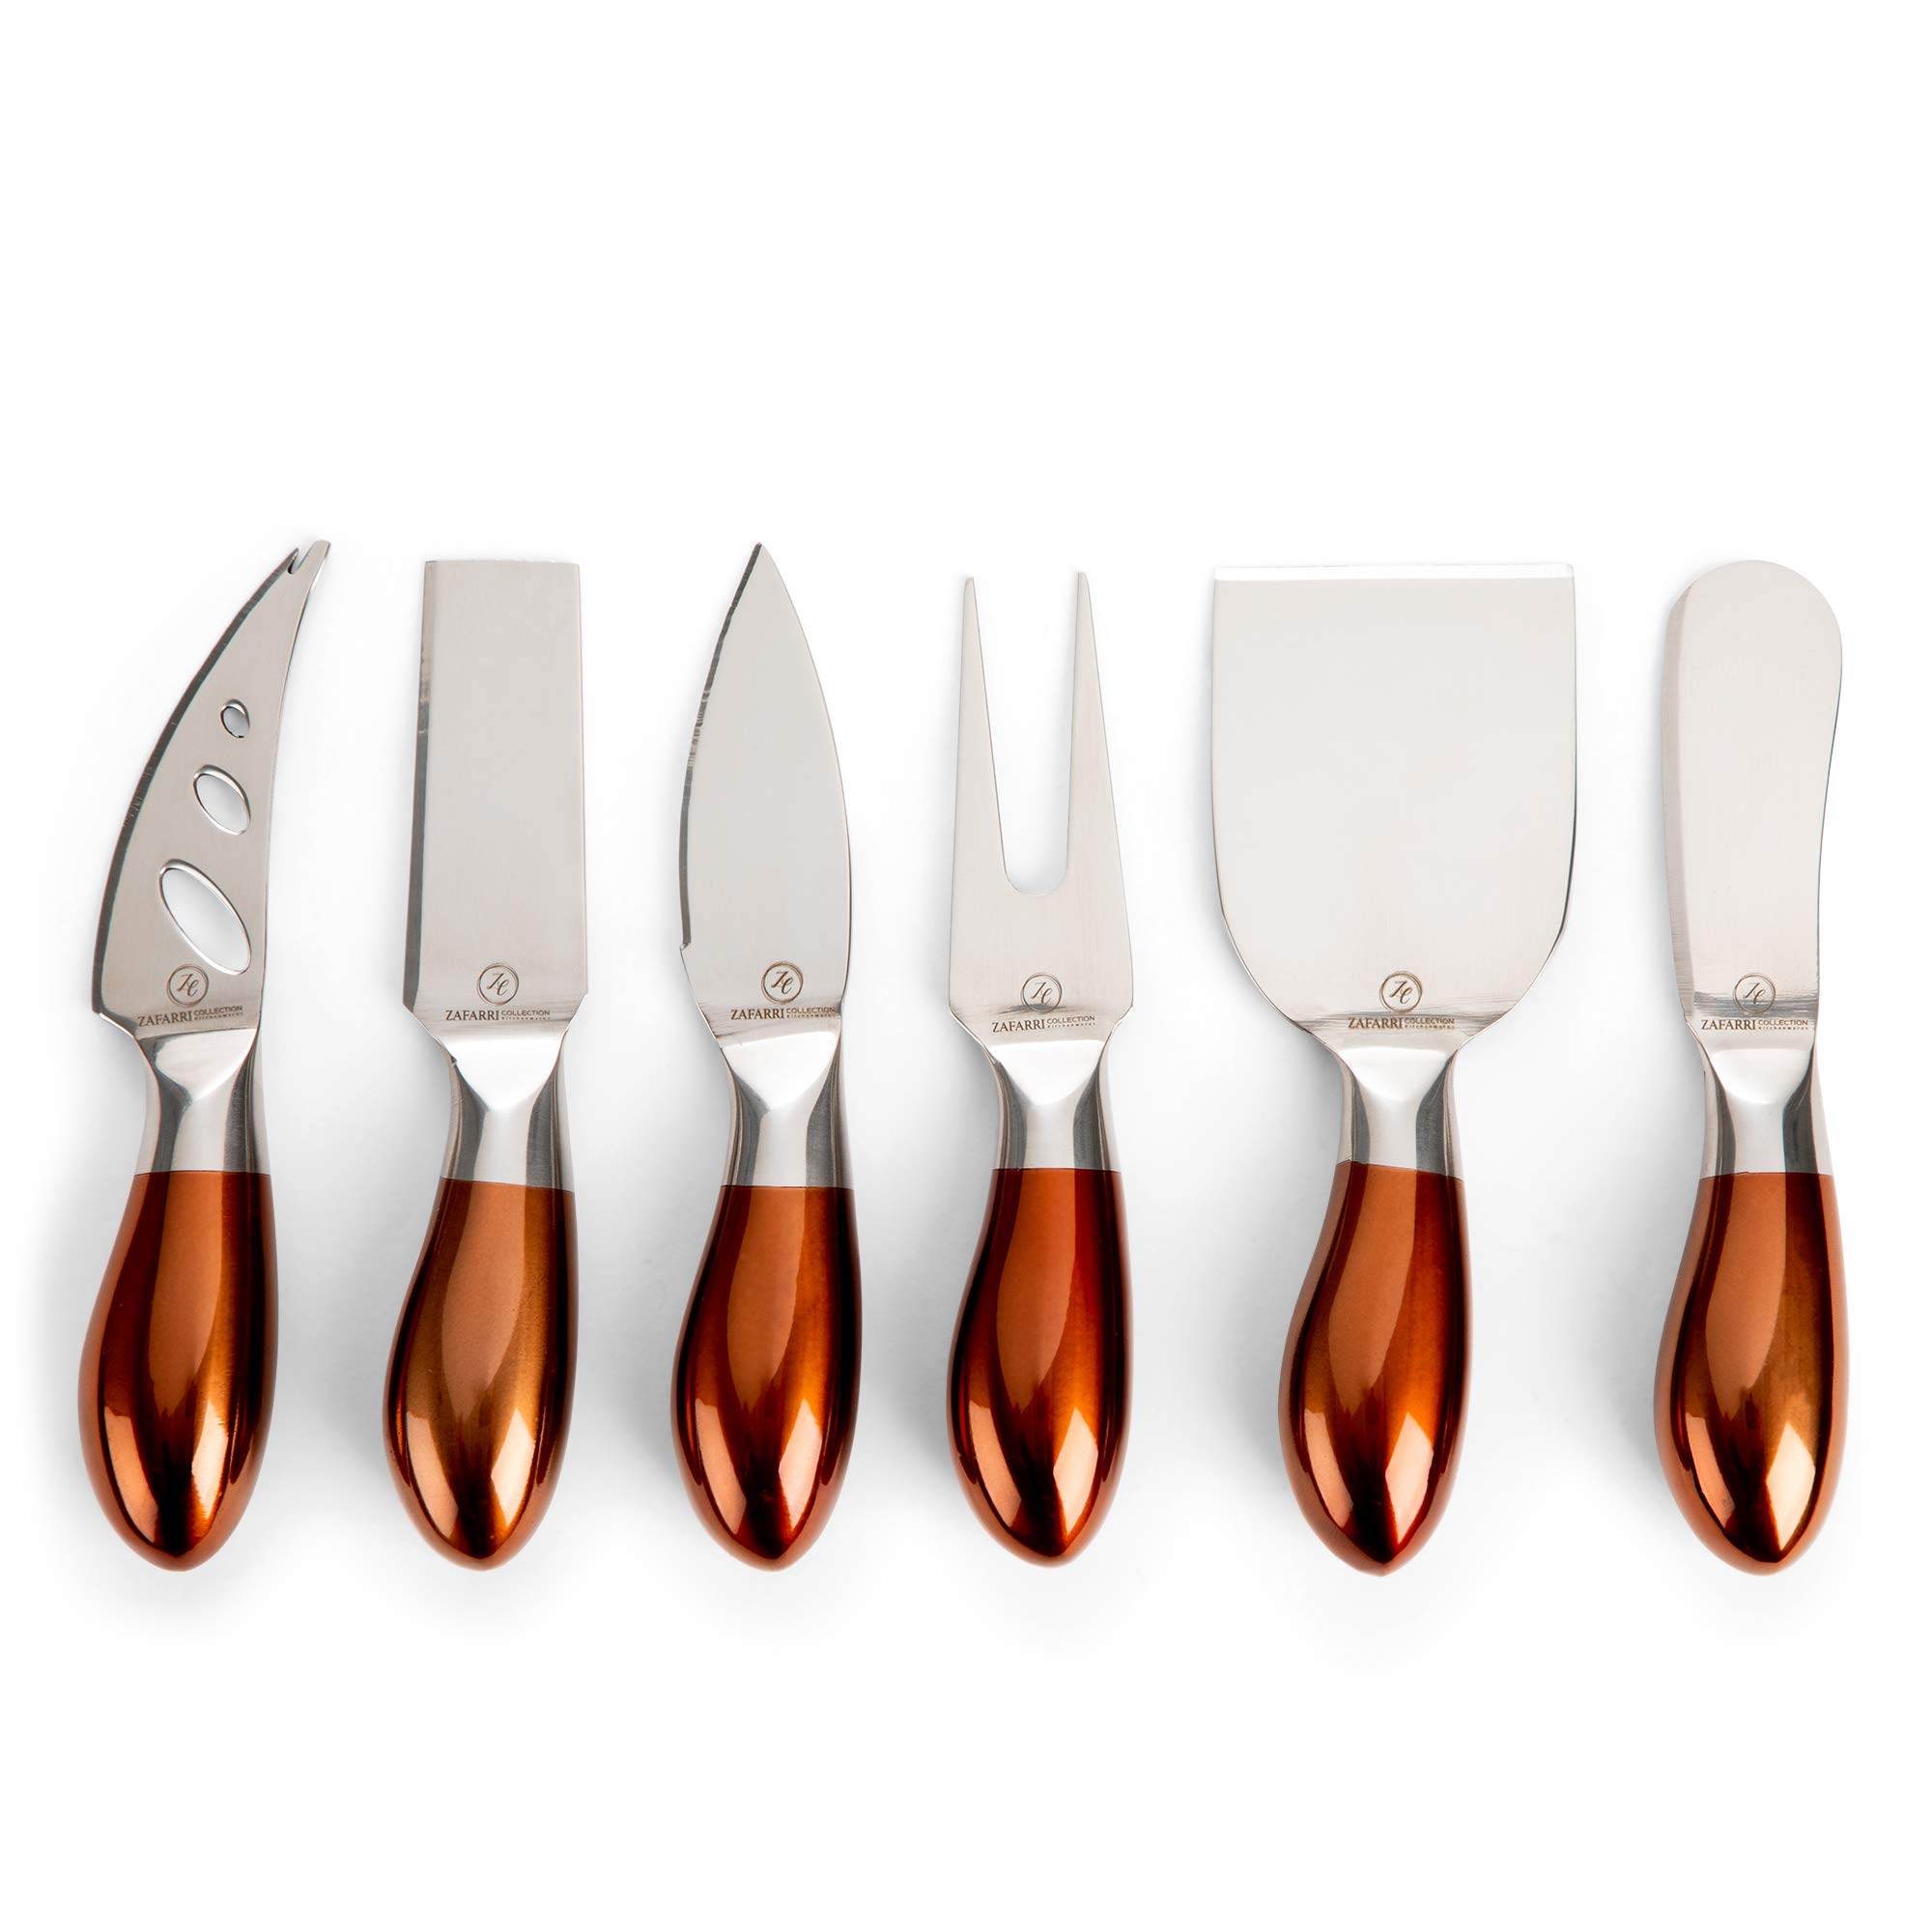 Elegant Cheese Knives Stainless Steel - Set of 6 Cheese Knives Spreaders with Rose Gold Handles | 6-Pieces Cheese Spreading Knife Sets for Charcuterie Boards, Cutlery Gift Set by Zafarri